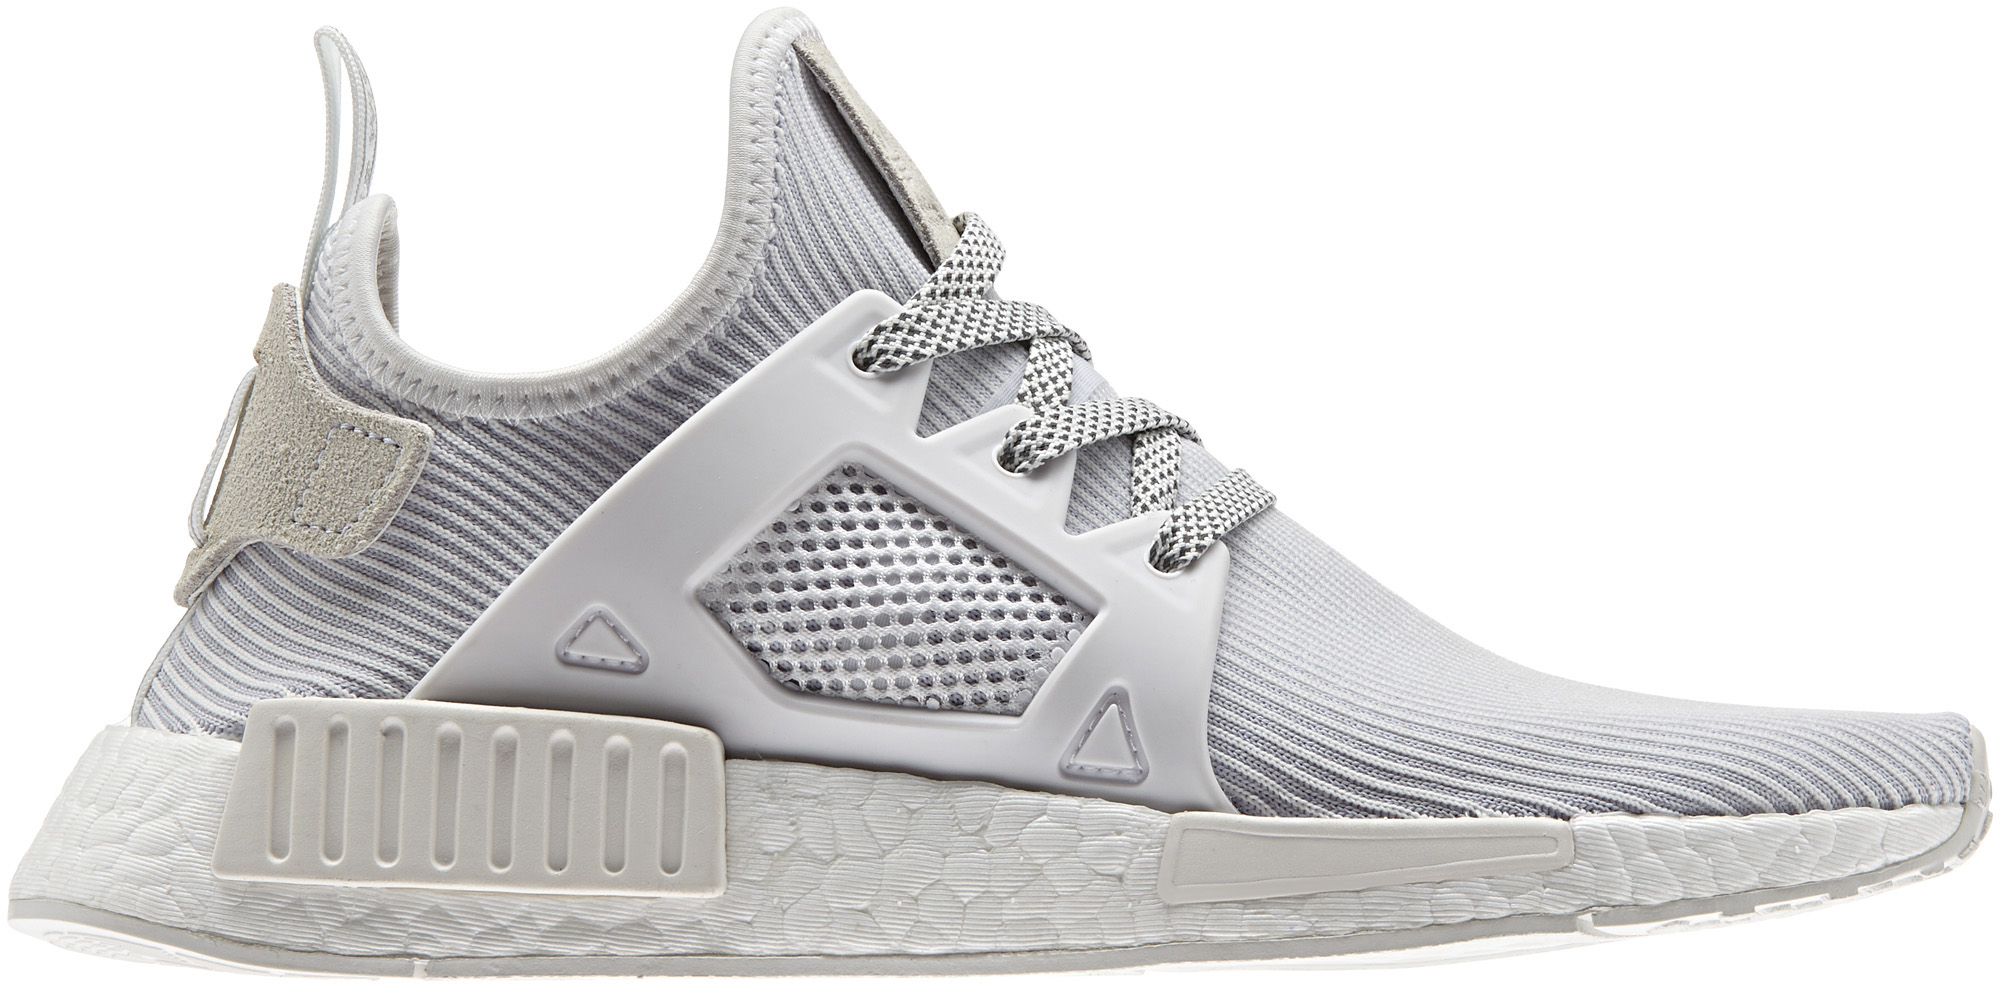 Adidas NMD XR1 PK Lilac Ice Purple Mid Grey Gum BB2367 Size 7.5